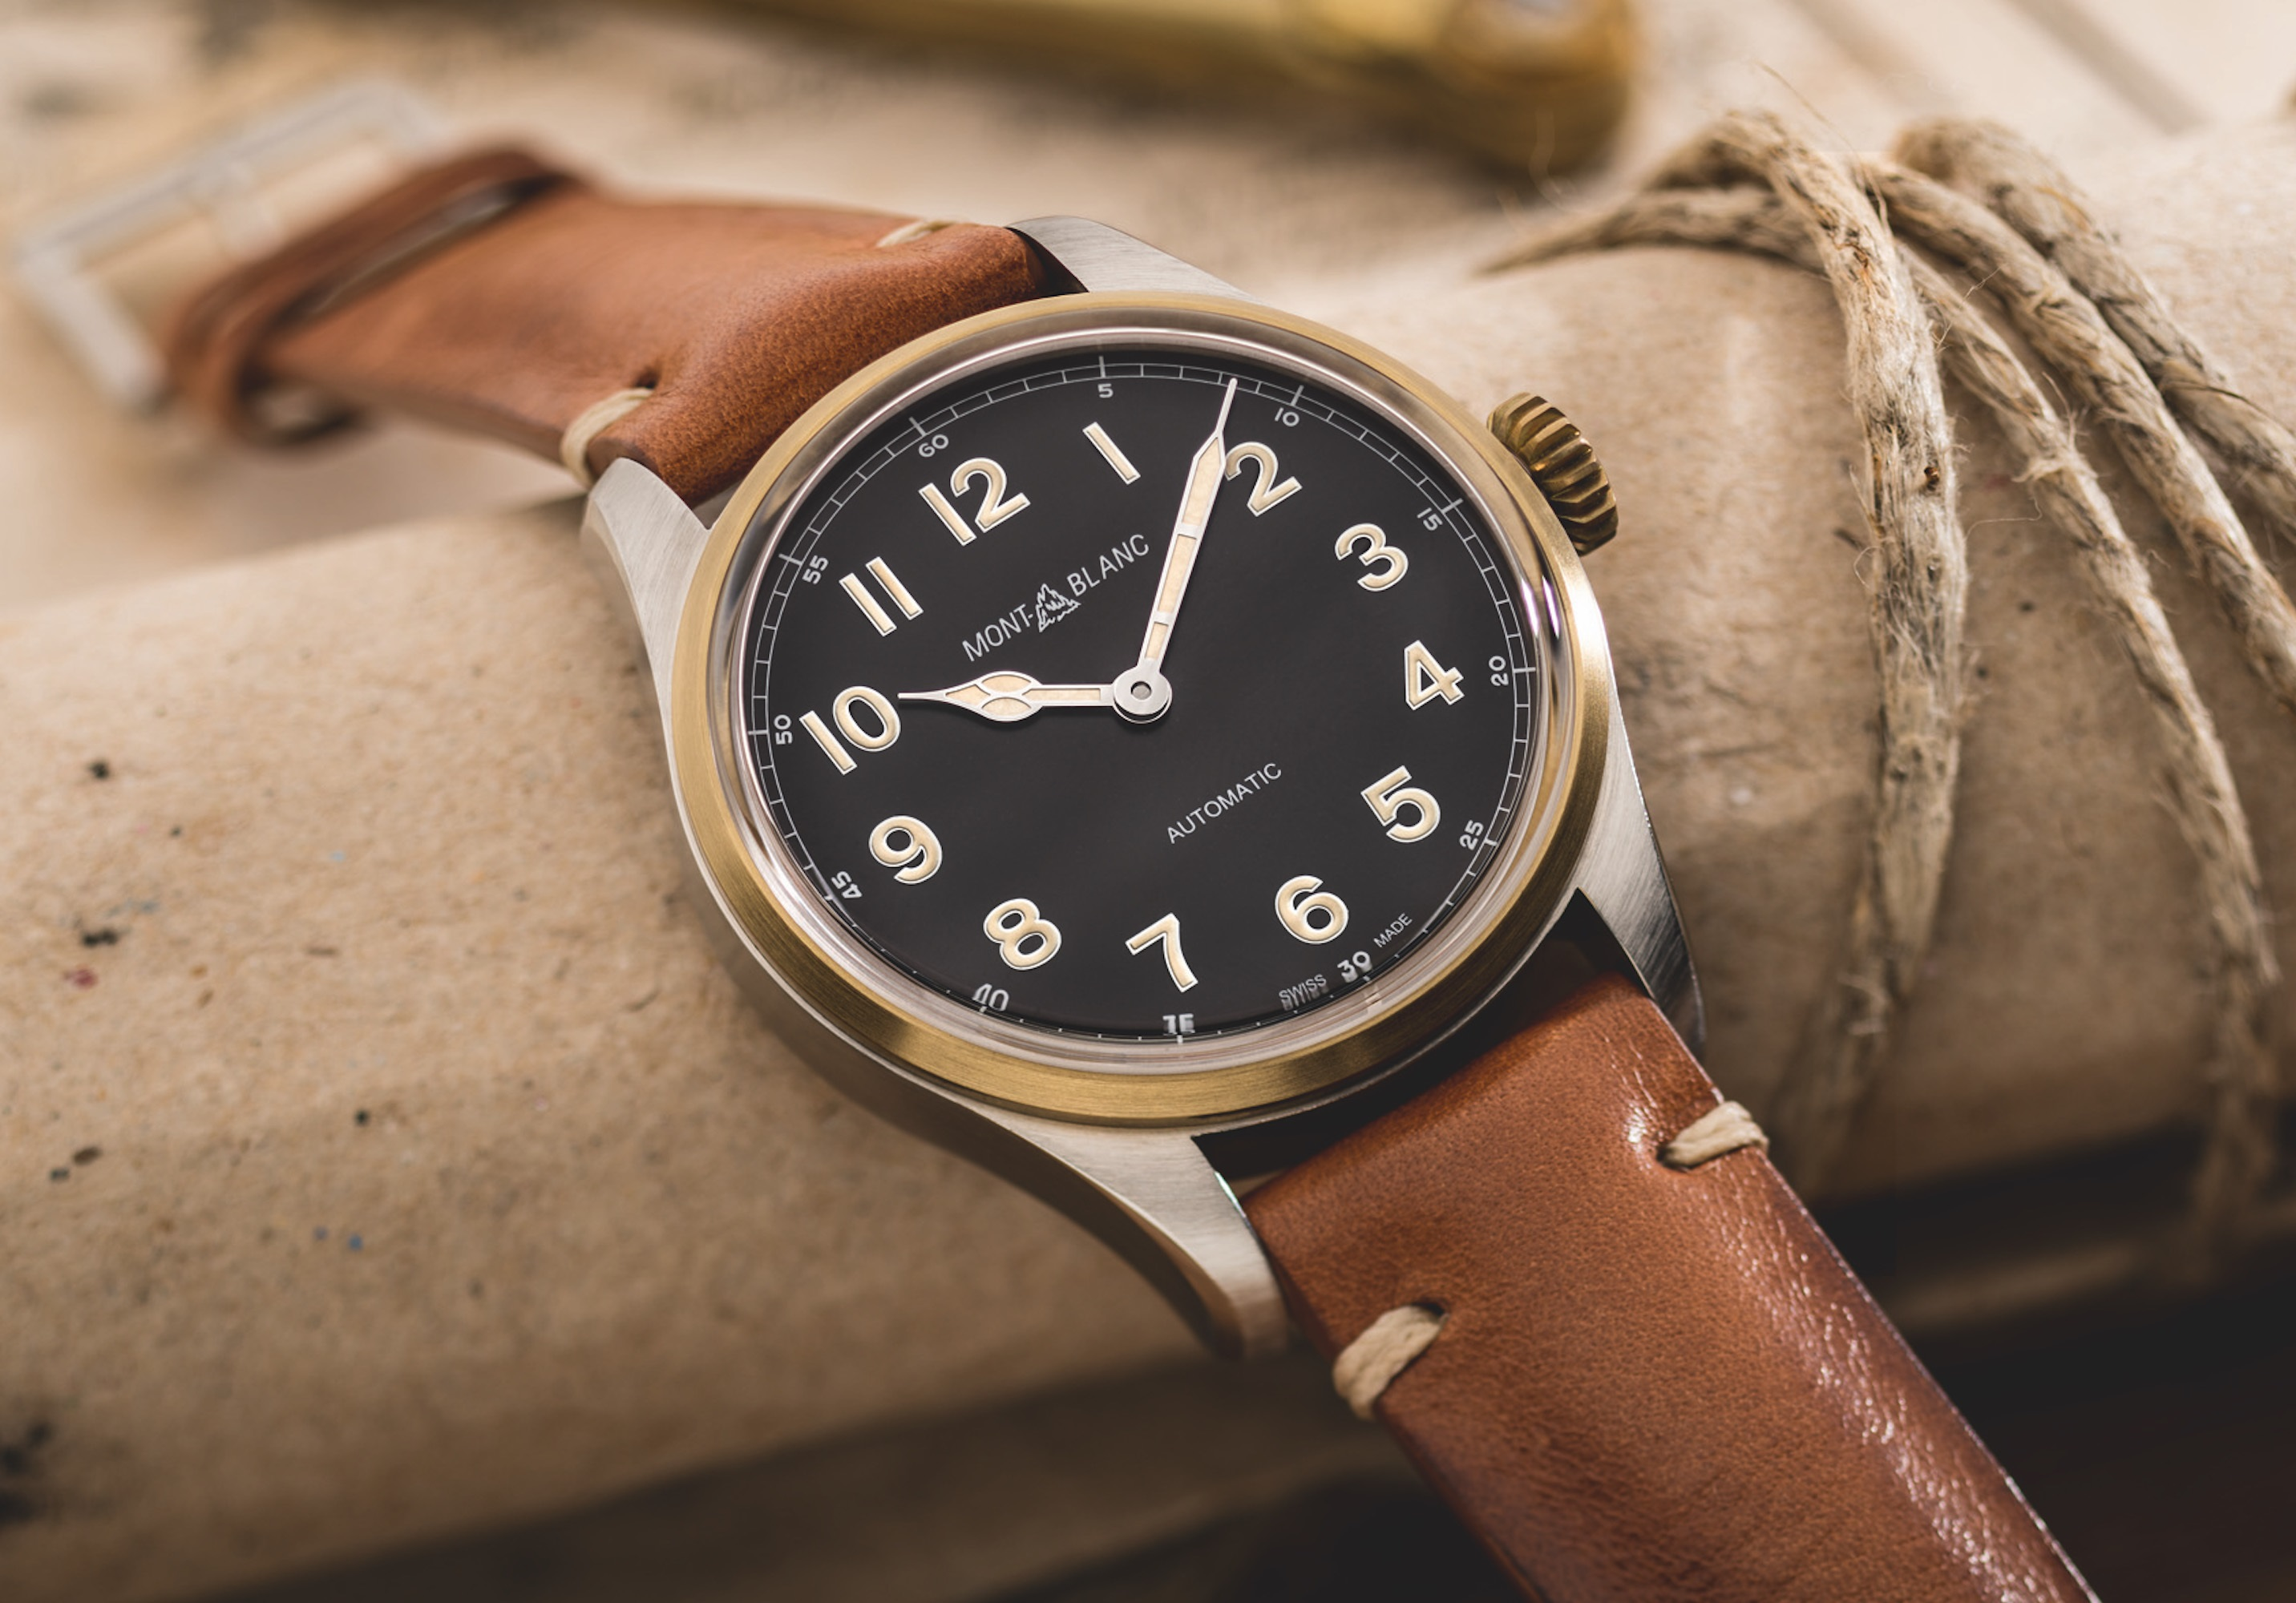 Montblanc 1858 Automatic 117833-3 vintage style watch